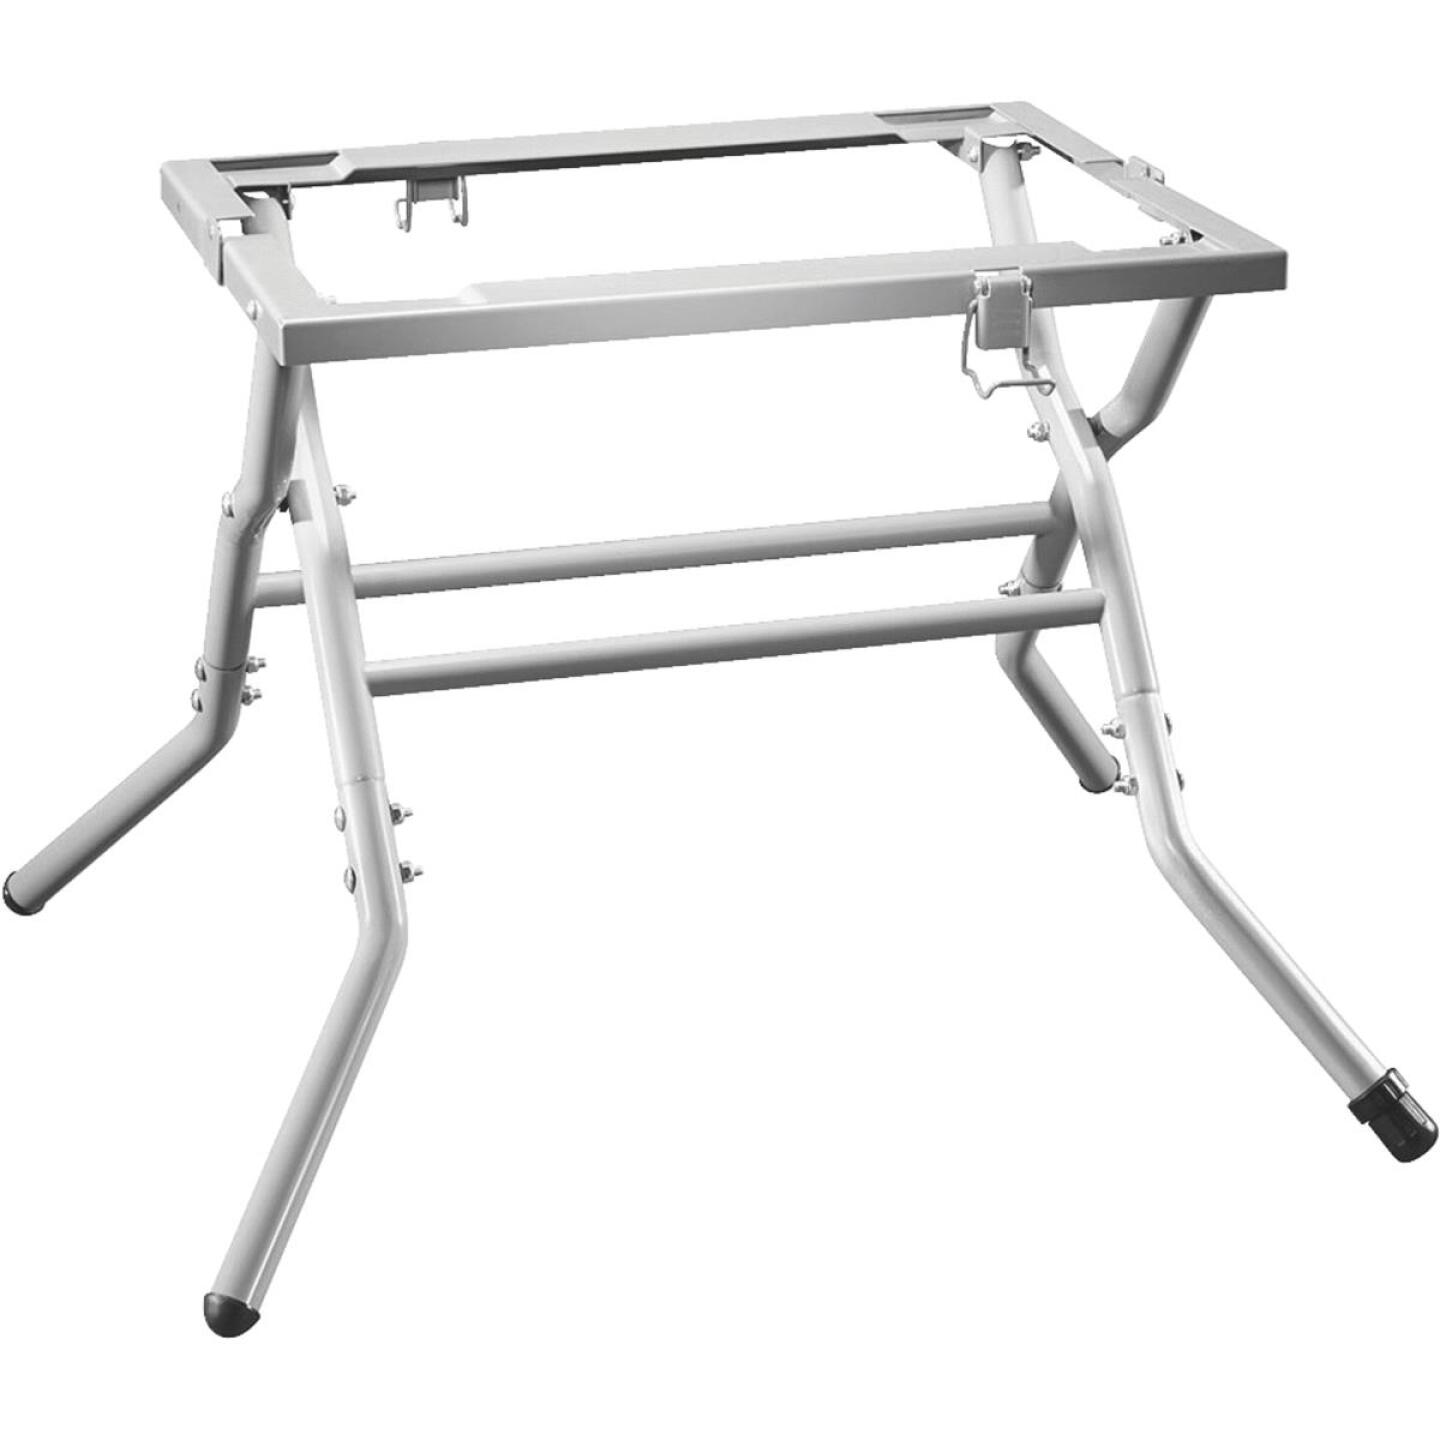 SKILSAW Portable Worm Drive Table Saw Stand Image 1